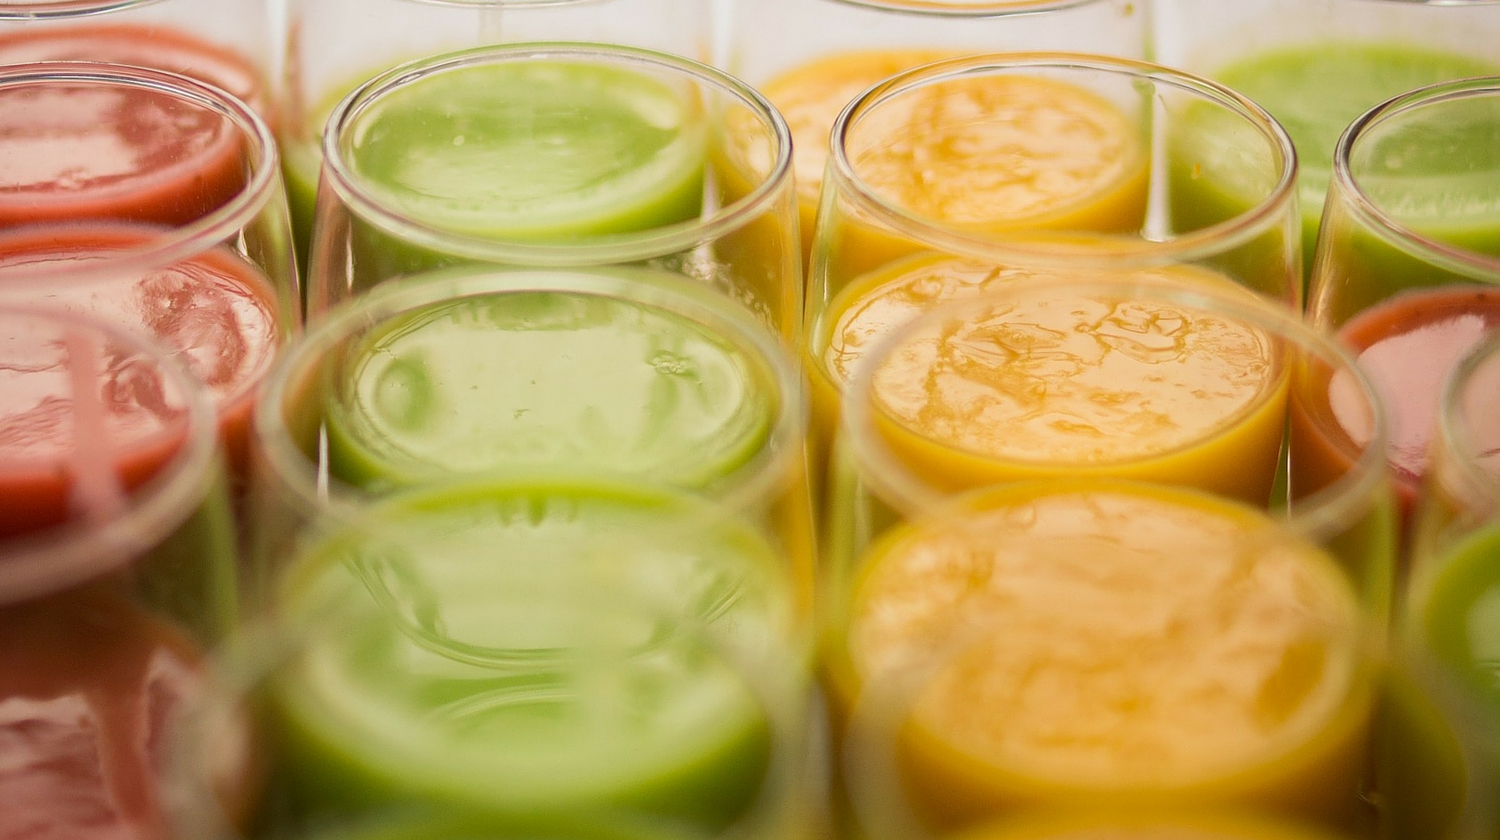 13 Delicious And Easy Summer Smoothie Recipes